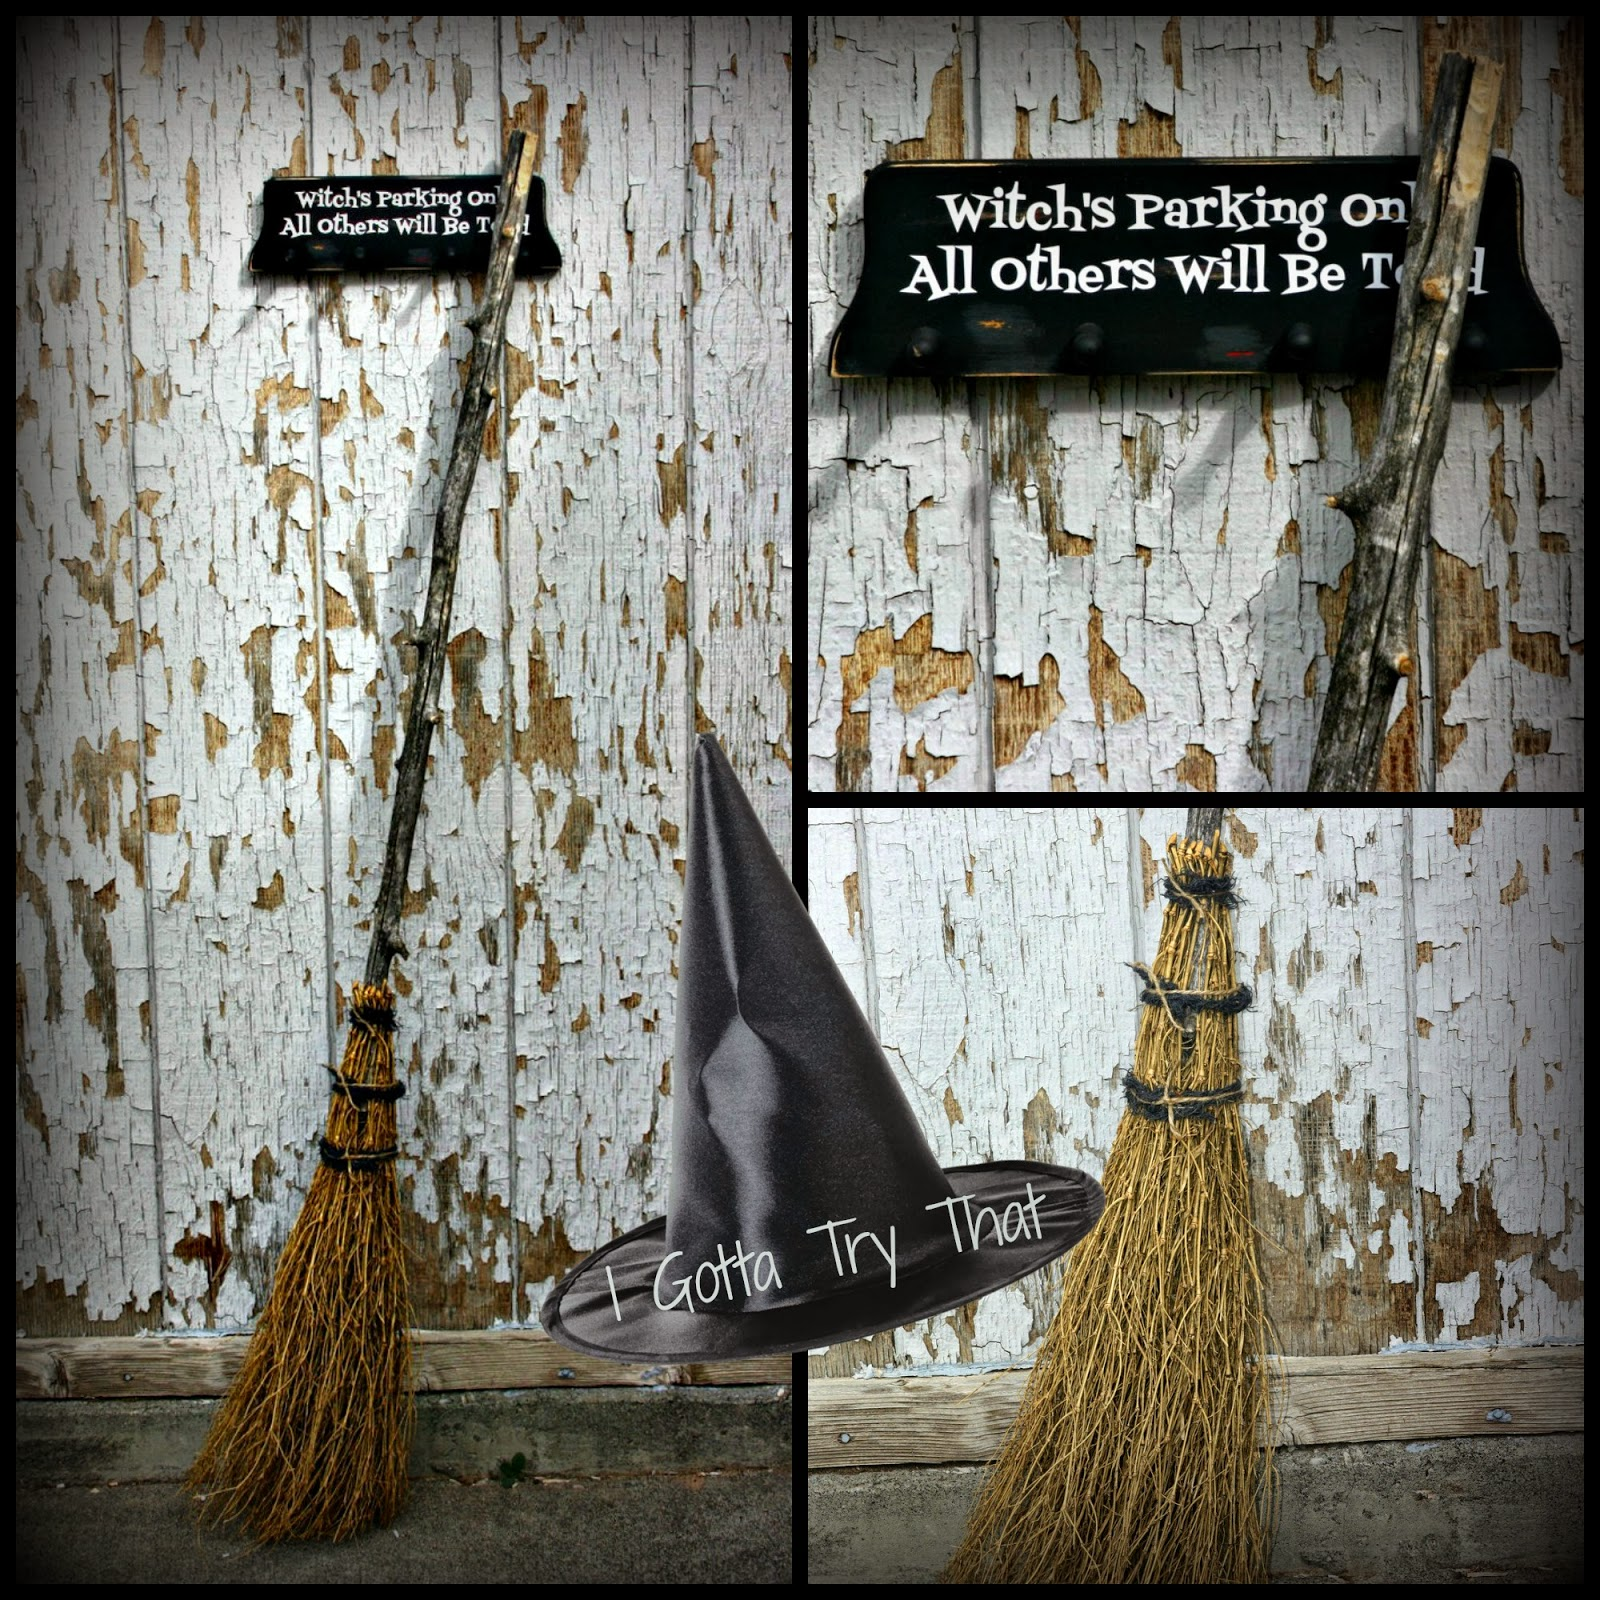 Witches Broom Or Besom Amp Broom Holder I Gotta Try That